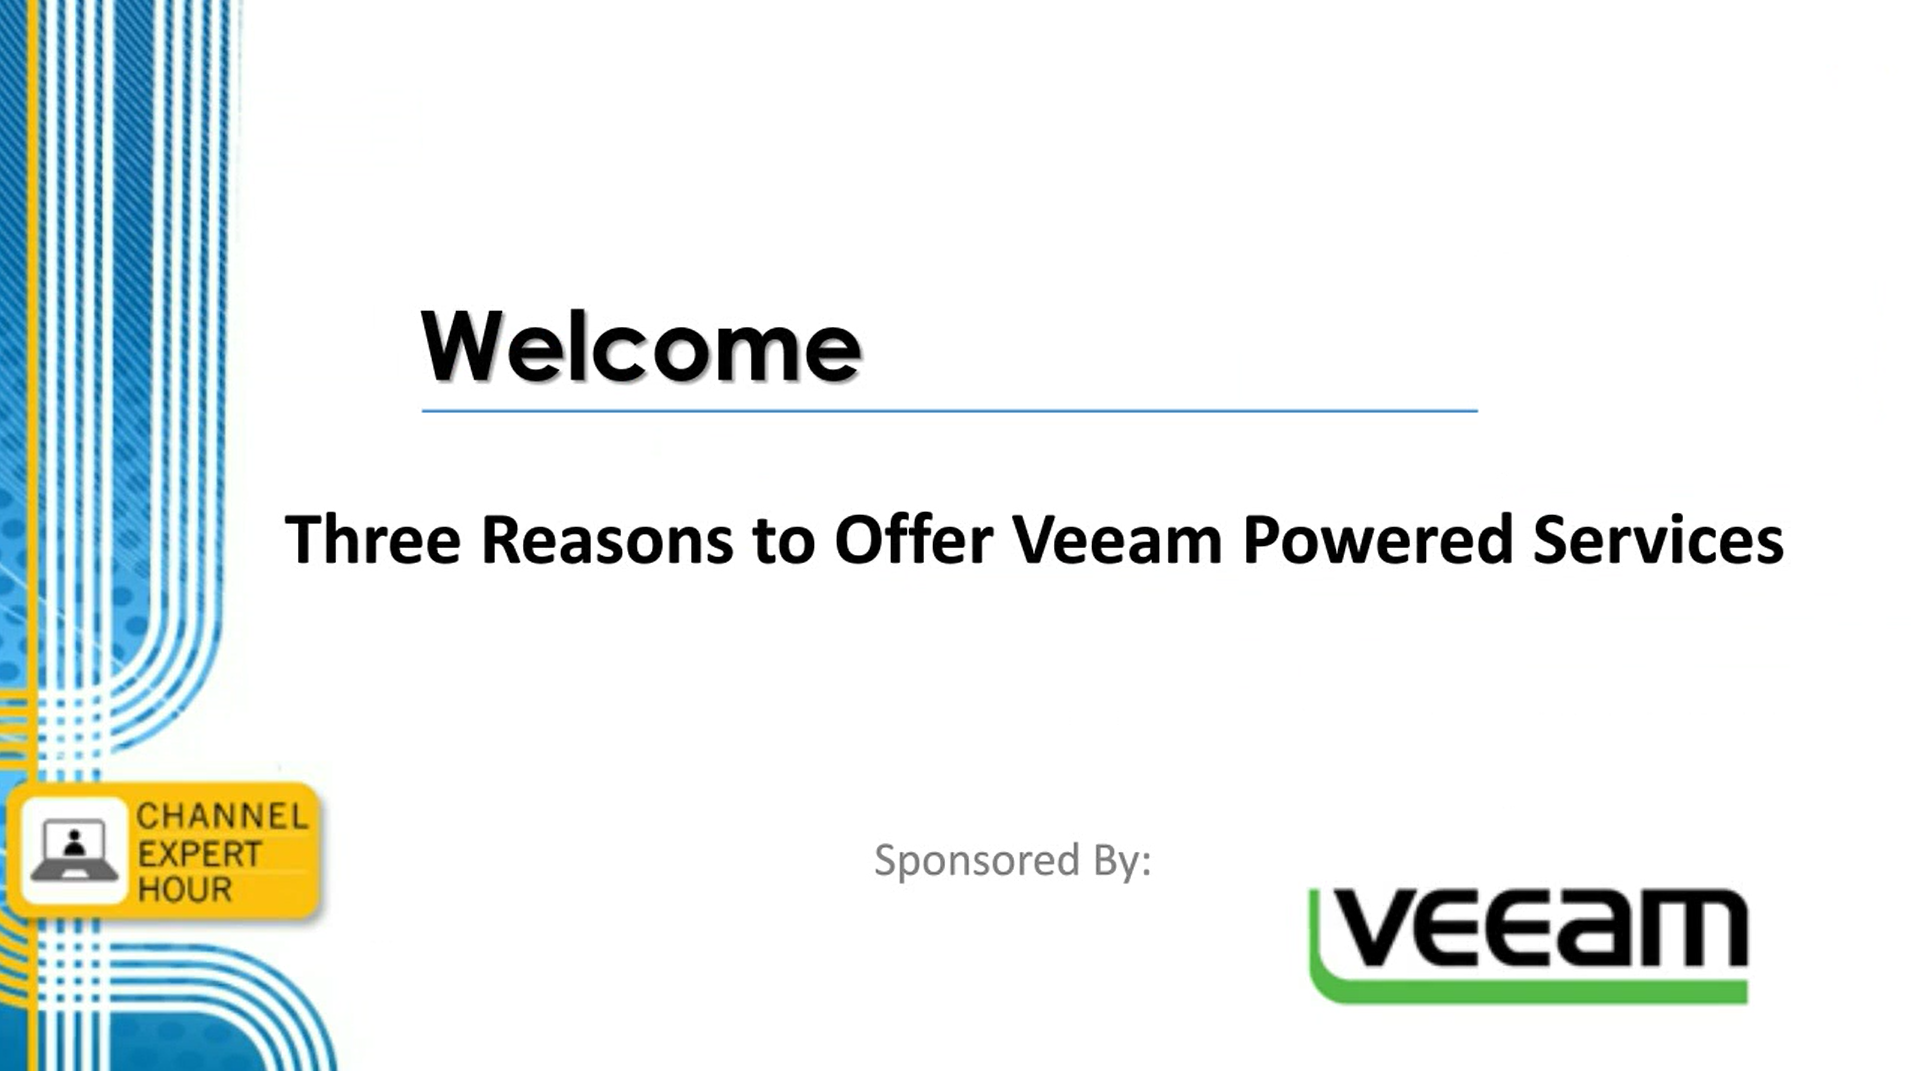 Three Reasons to Power with Veeam